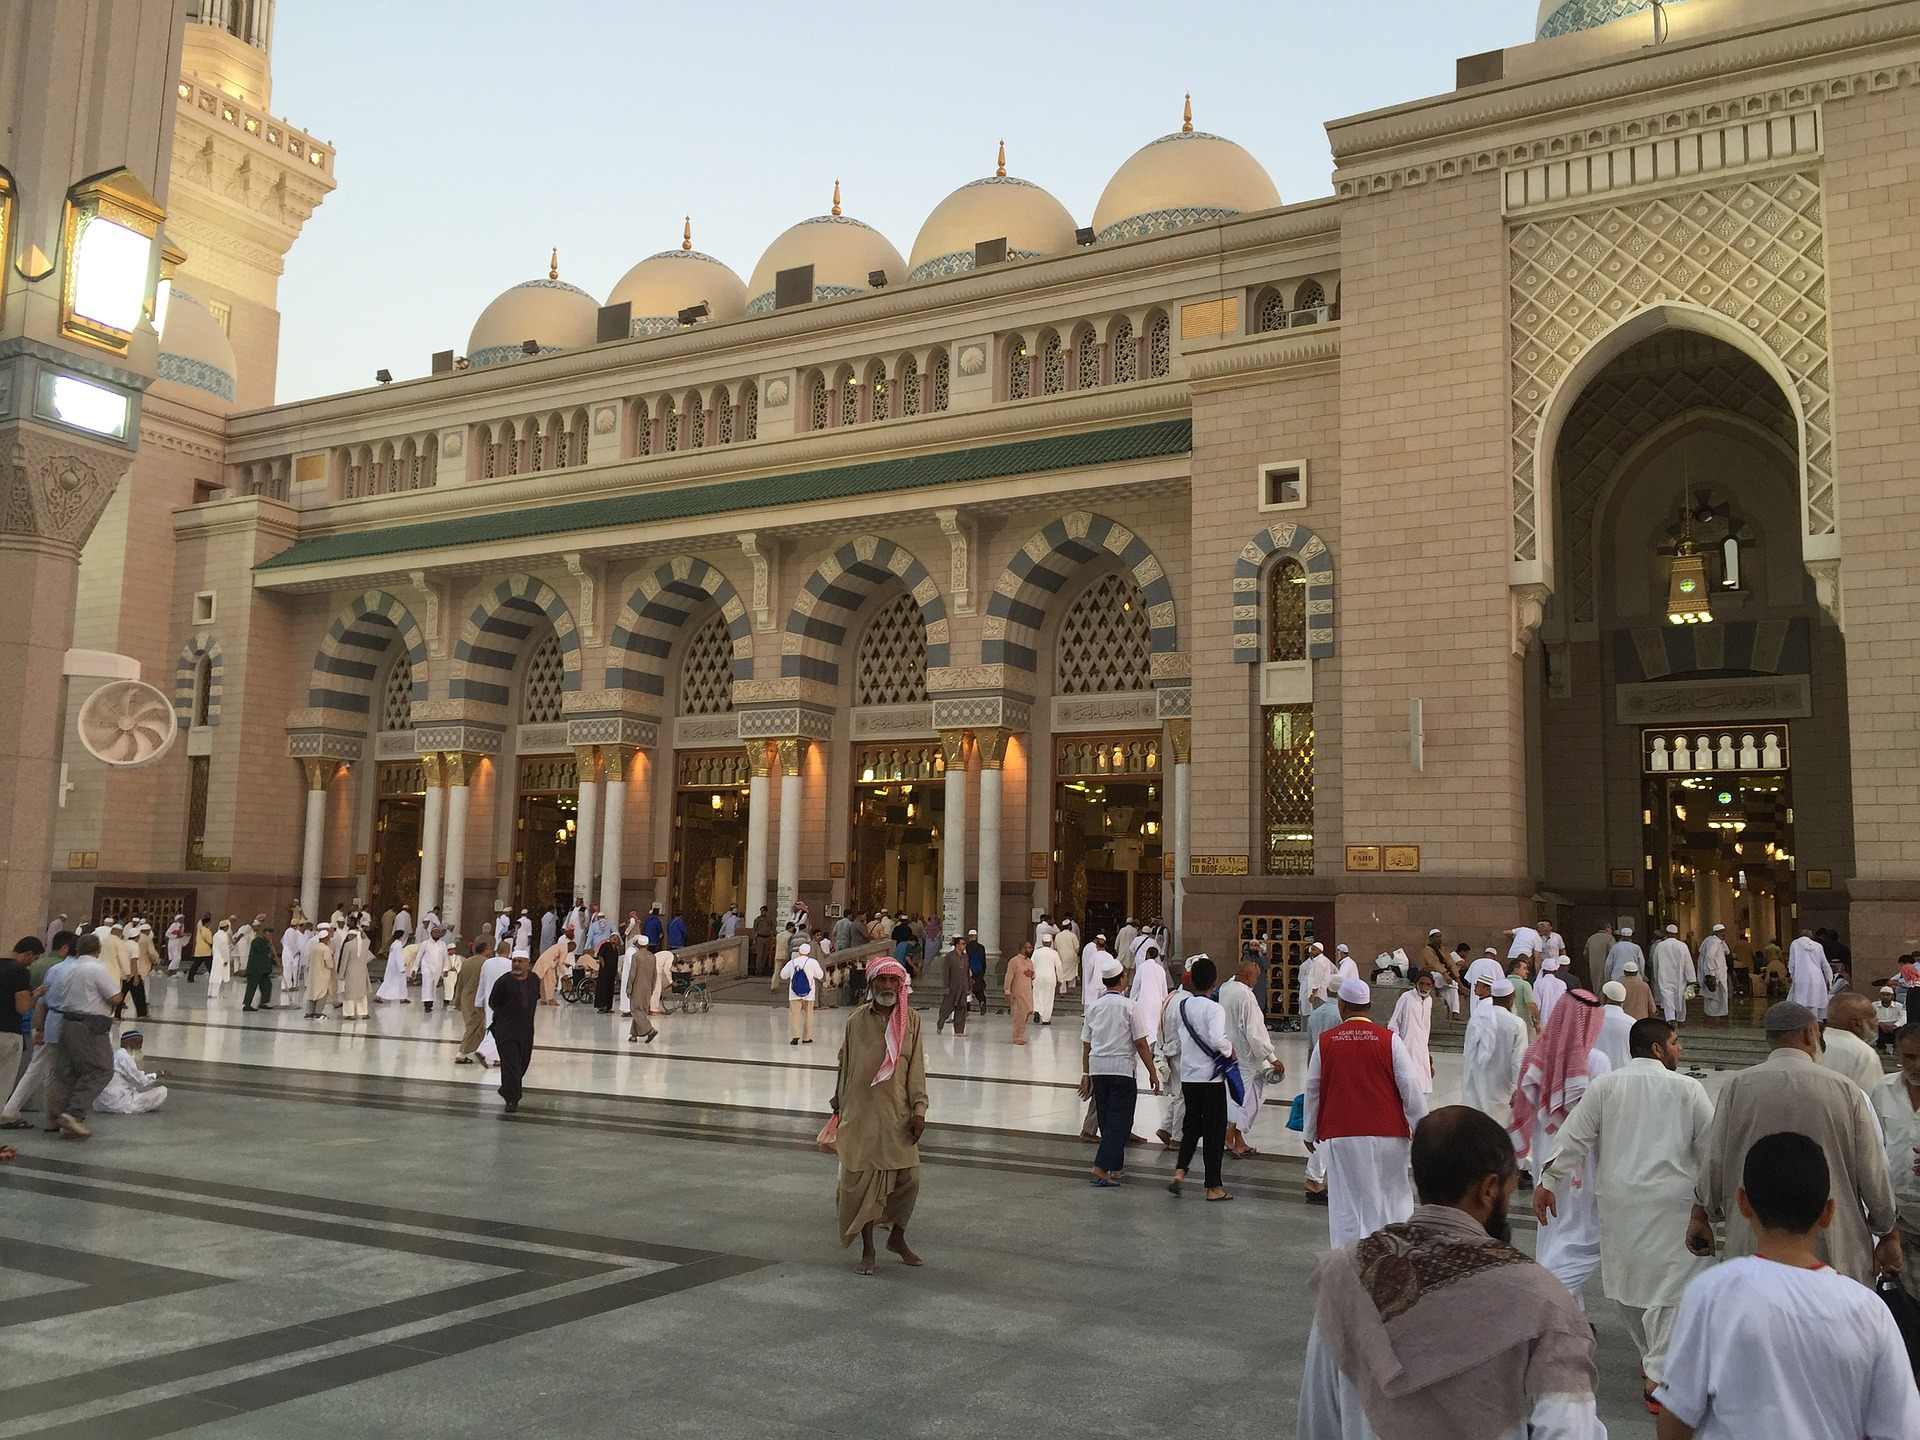 Building up the oppressed Saudi Church